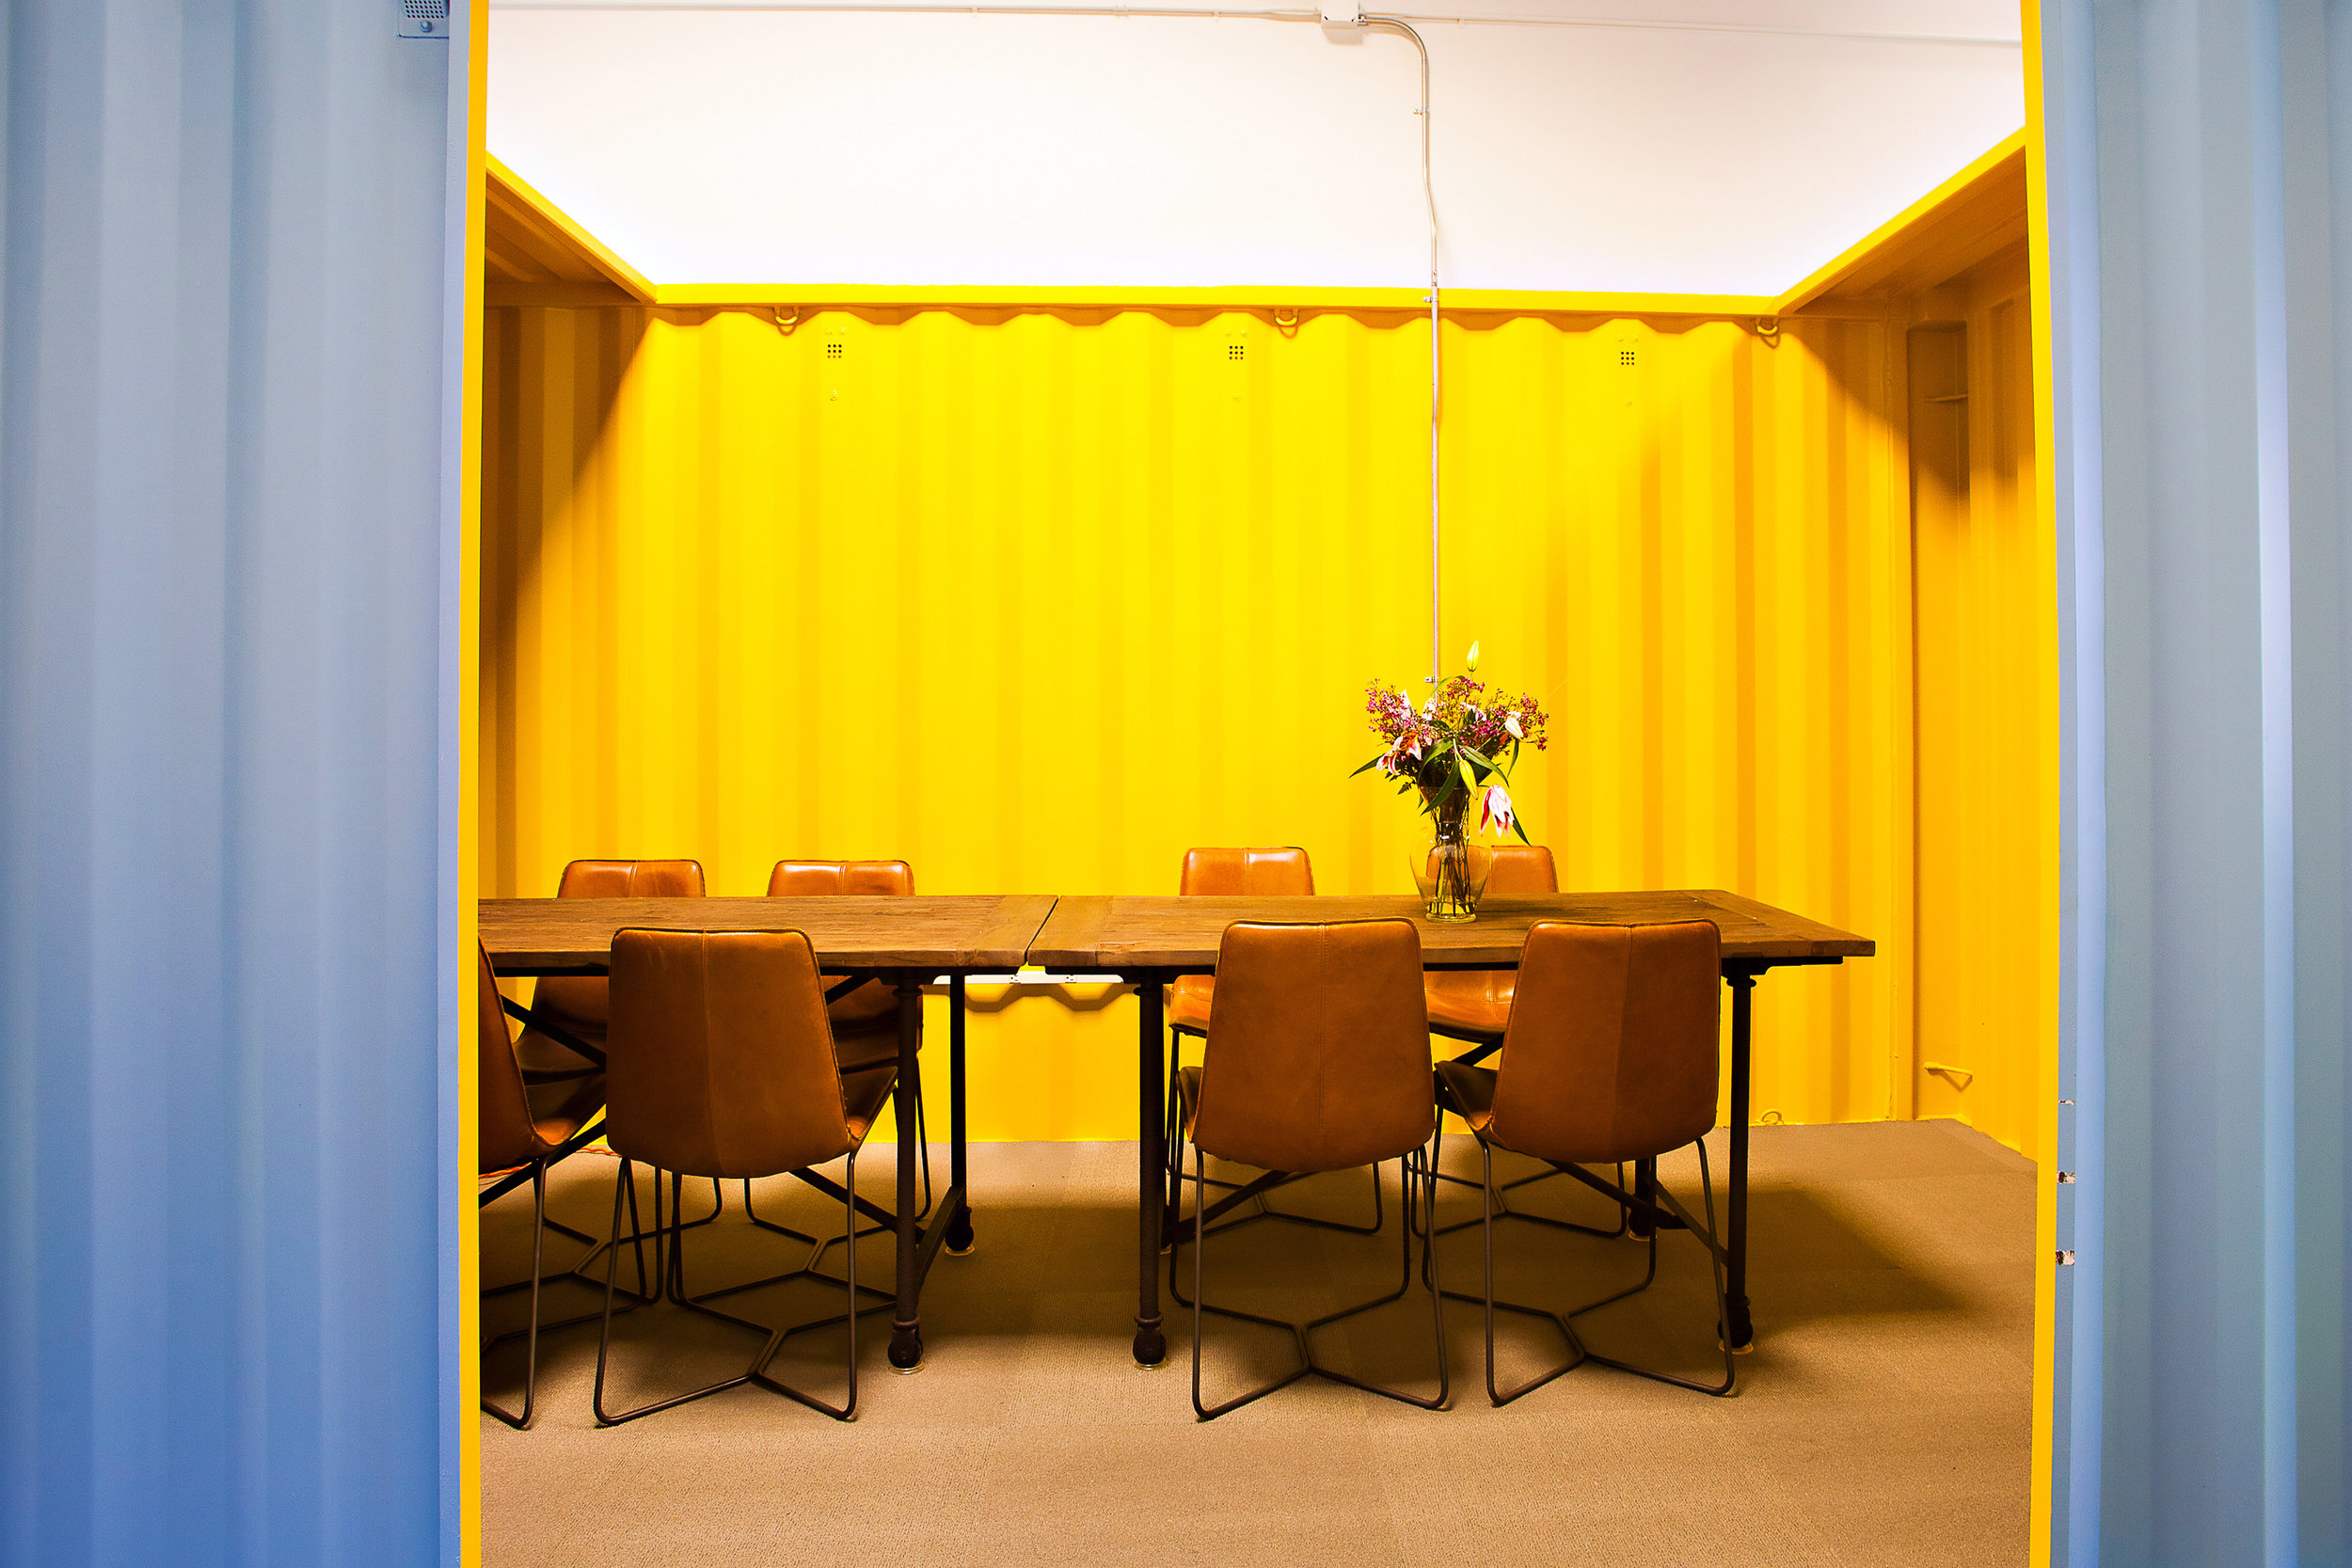 Fashioning cozy meeting rooms out of shipping containers proved to be an affordable solution compared to building out individual spaces. (Photo Credit: Kathleen Harrison)